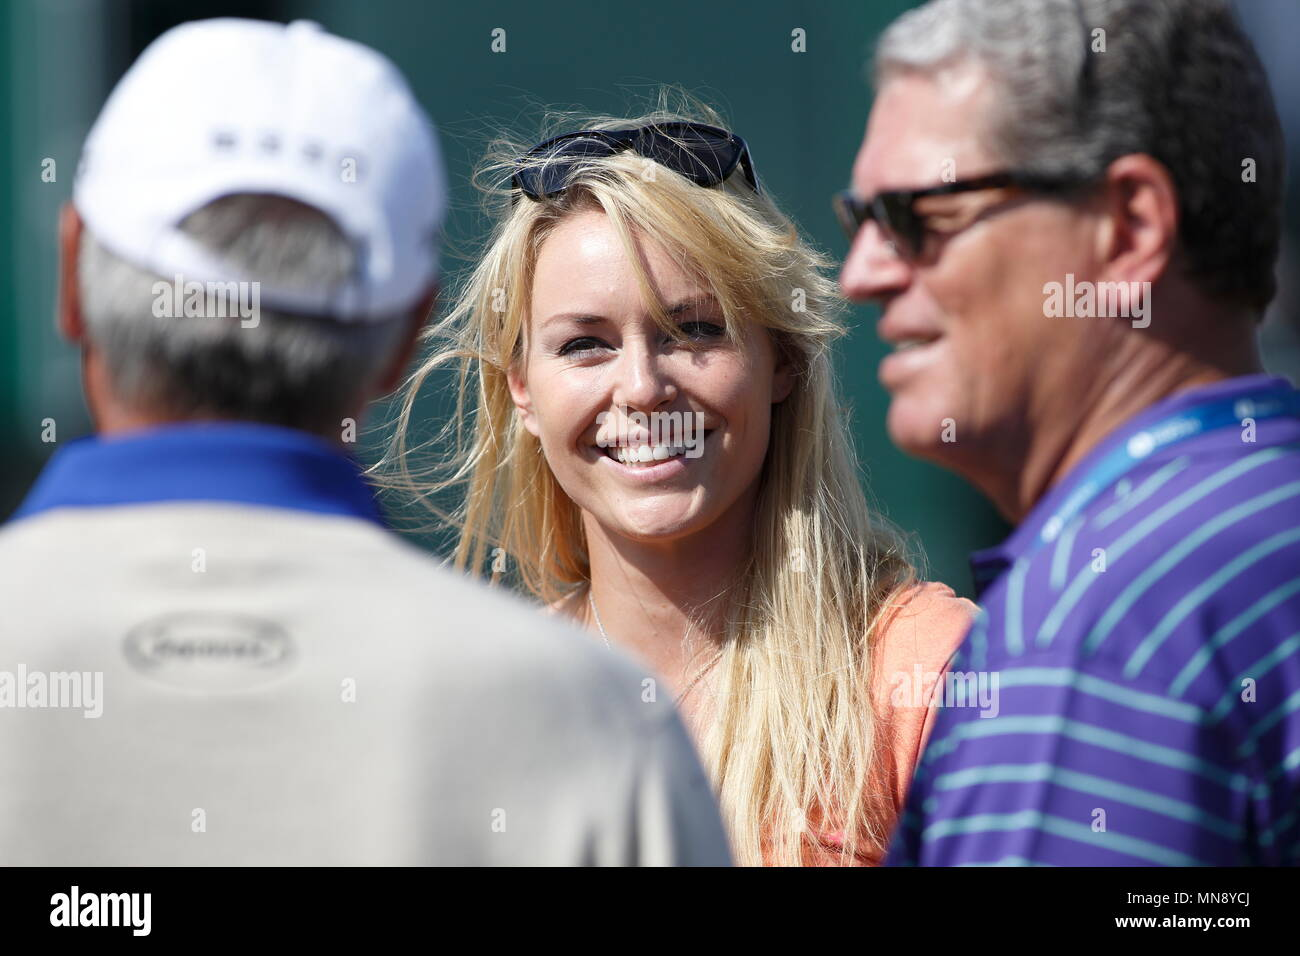 Muirfield Scotland July 17 Lindsey Vonn Girlfriend Of Tiger